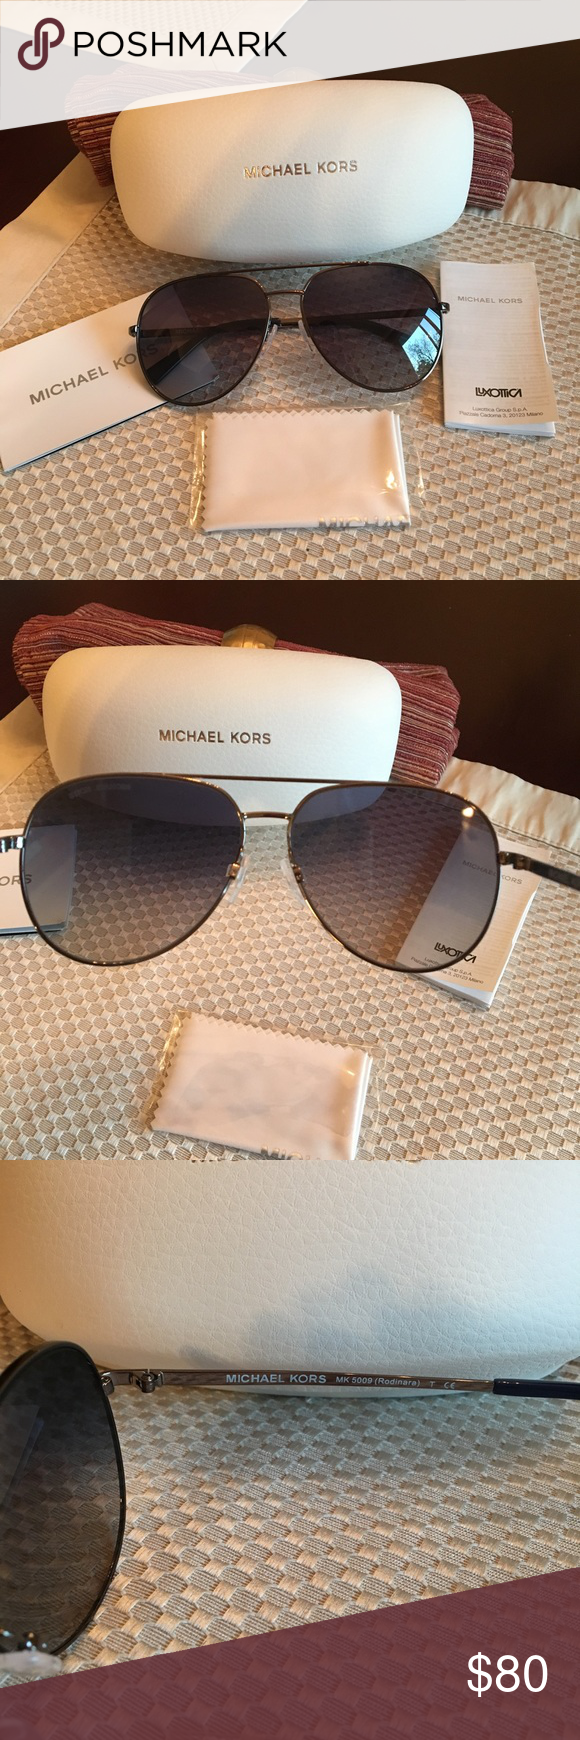 3a464f0d8e Authentic Michael Kors Rodinara Aviators NWOT New without tags.. never  worn! MK model